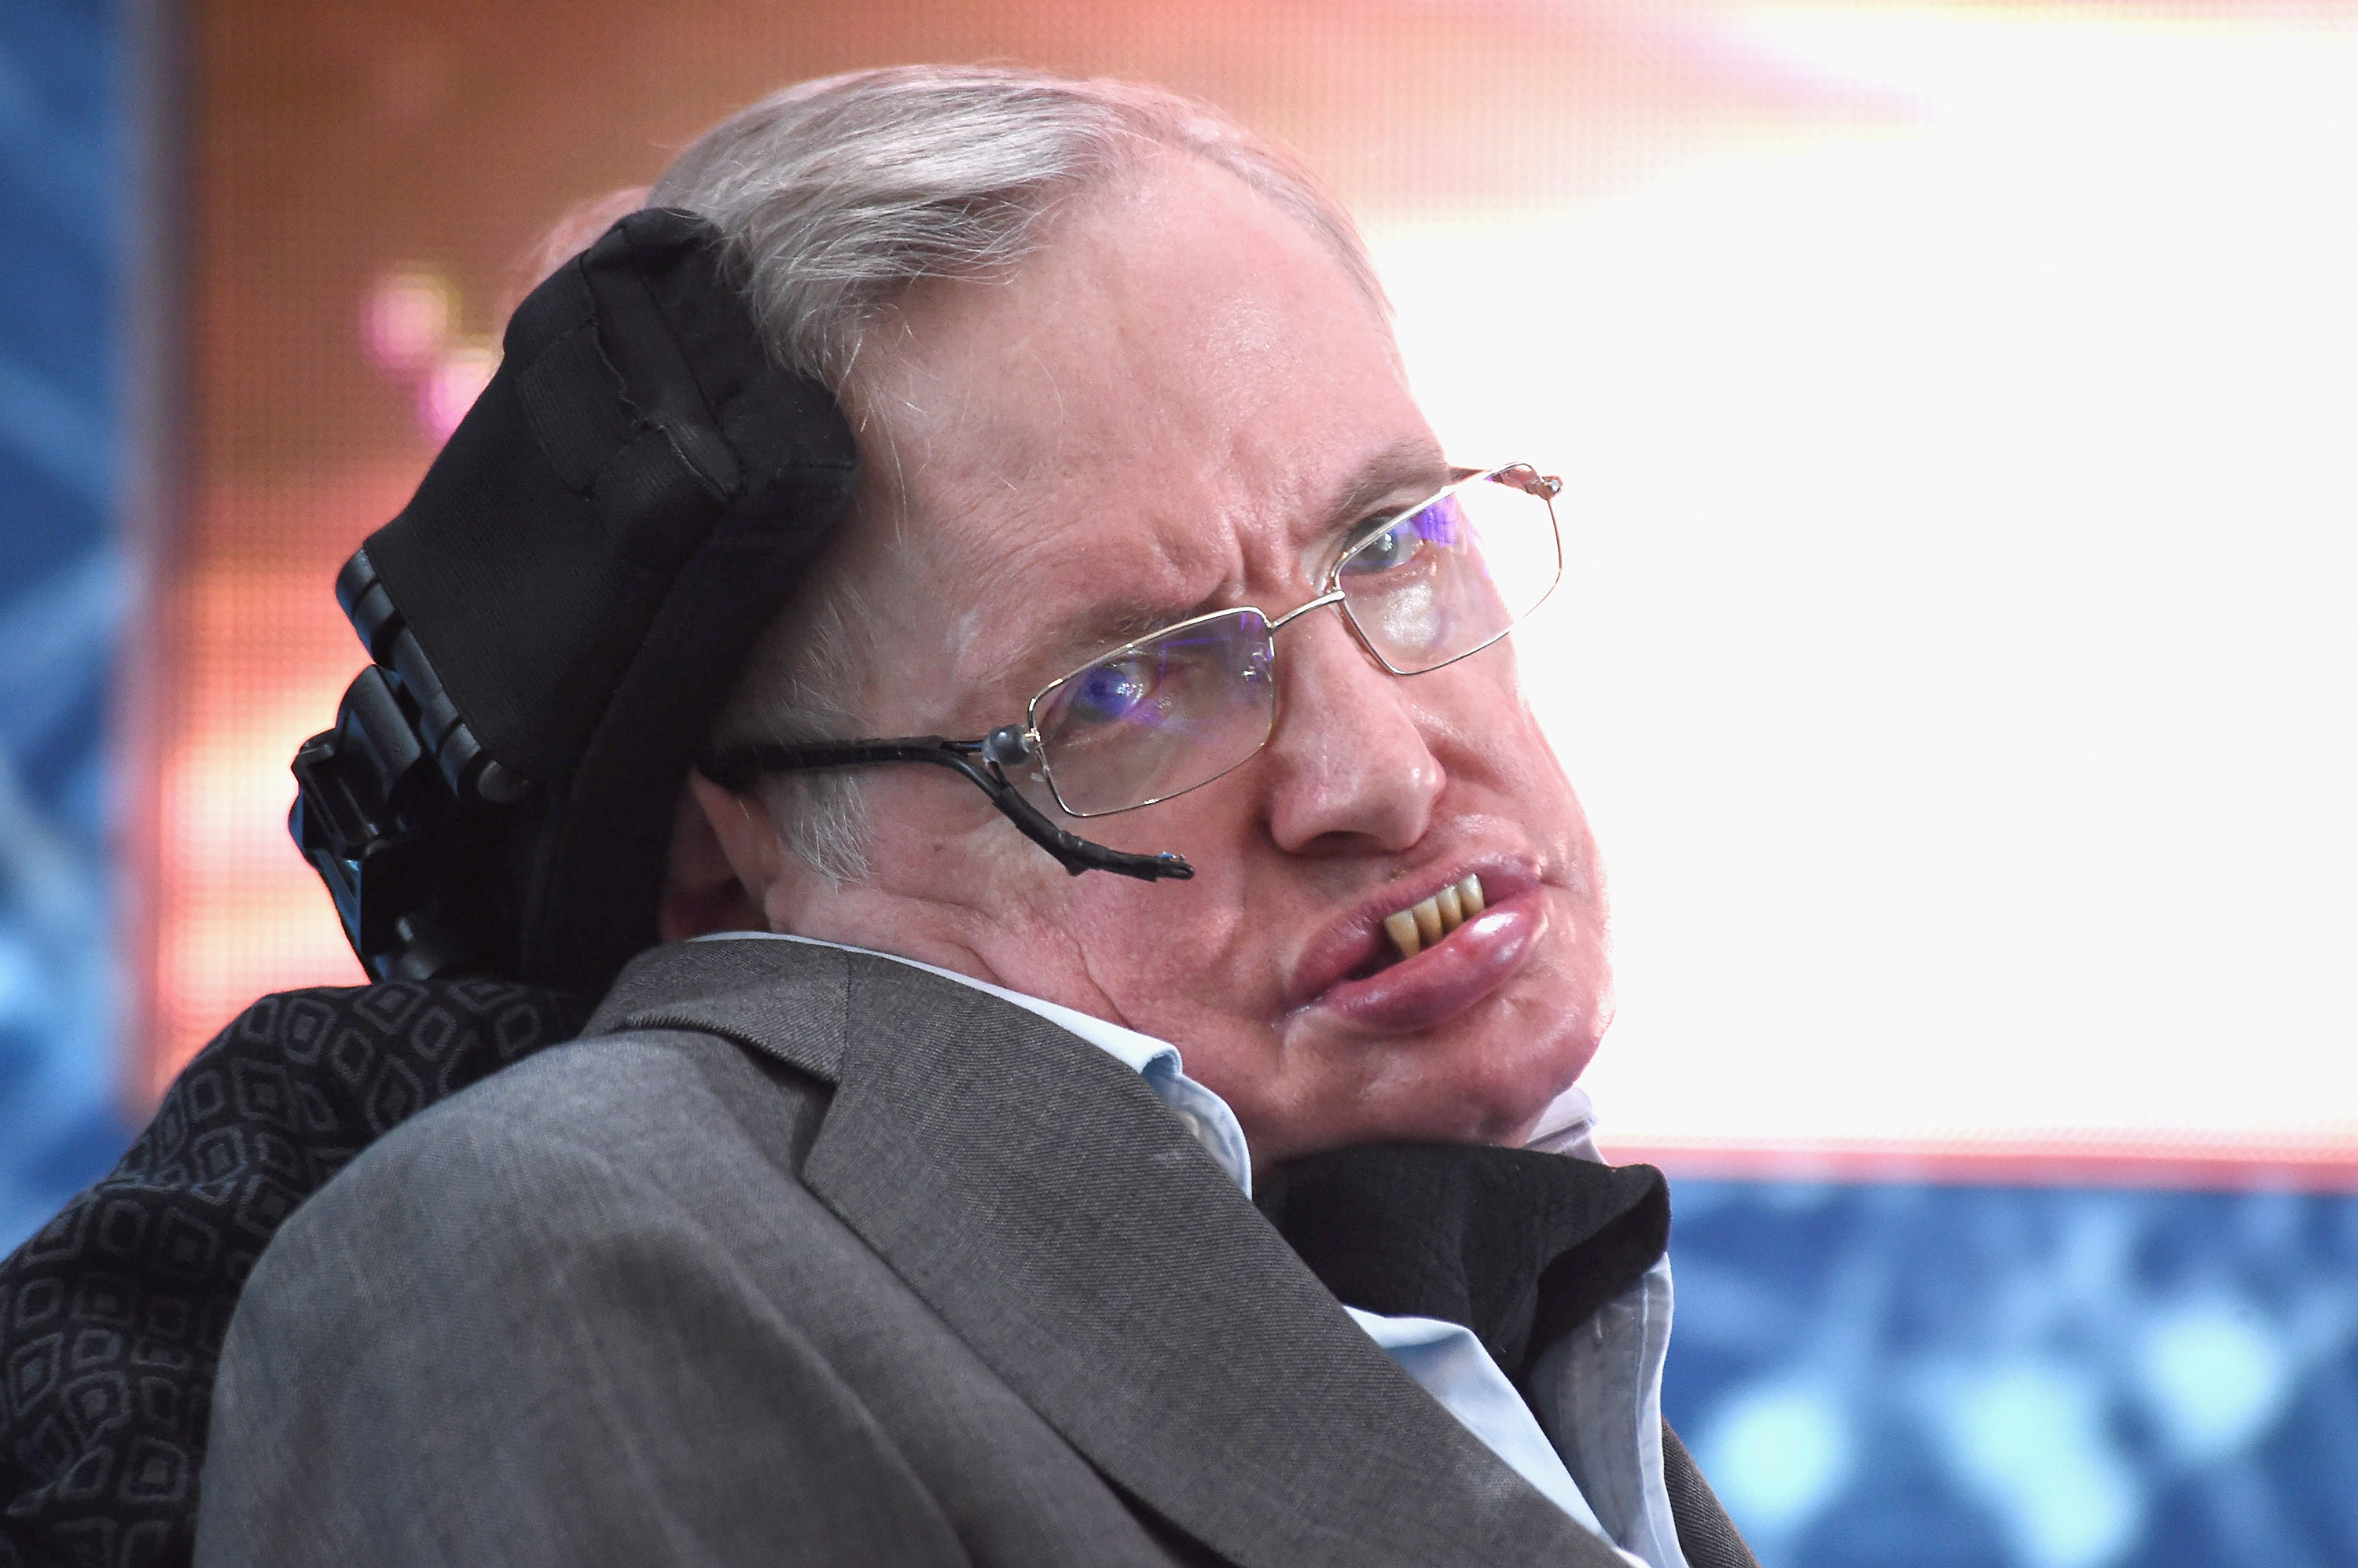 Cosmologist Stephen Hawking attends the New Space Exploration Initiative  Breakthrough Starshot  Announcement at One World Observatory on April 12, 2016 in New York City.